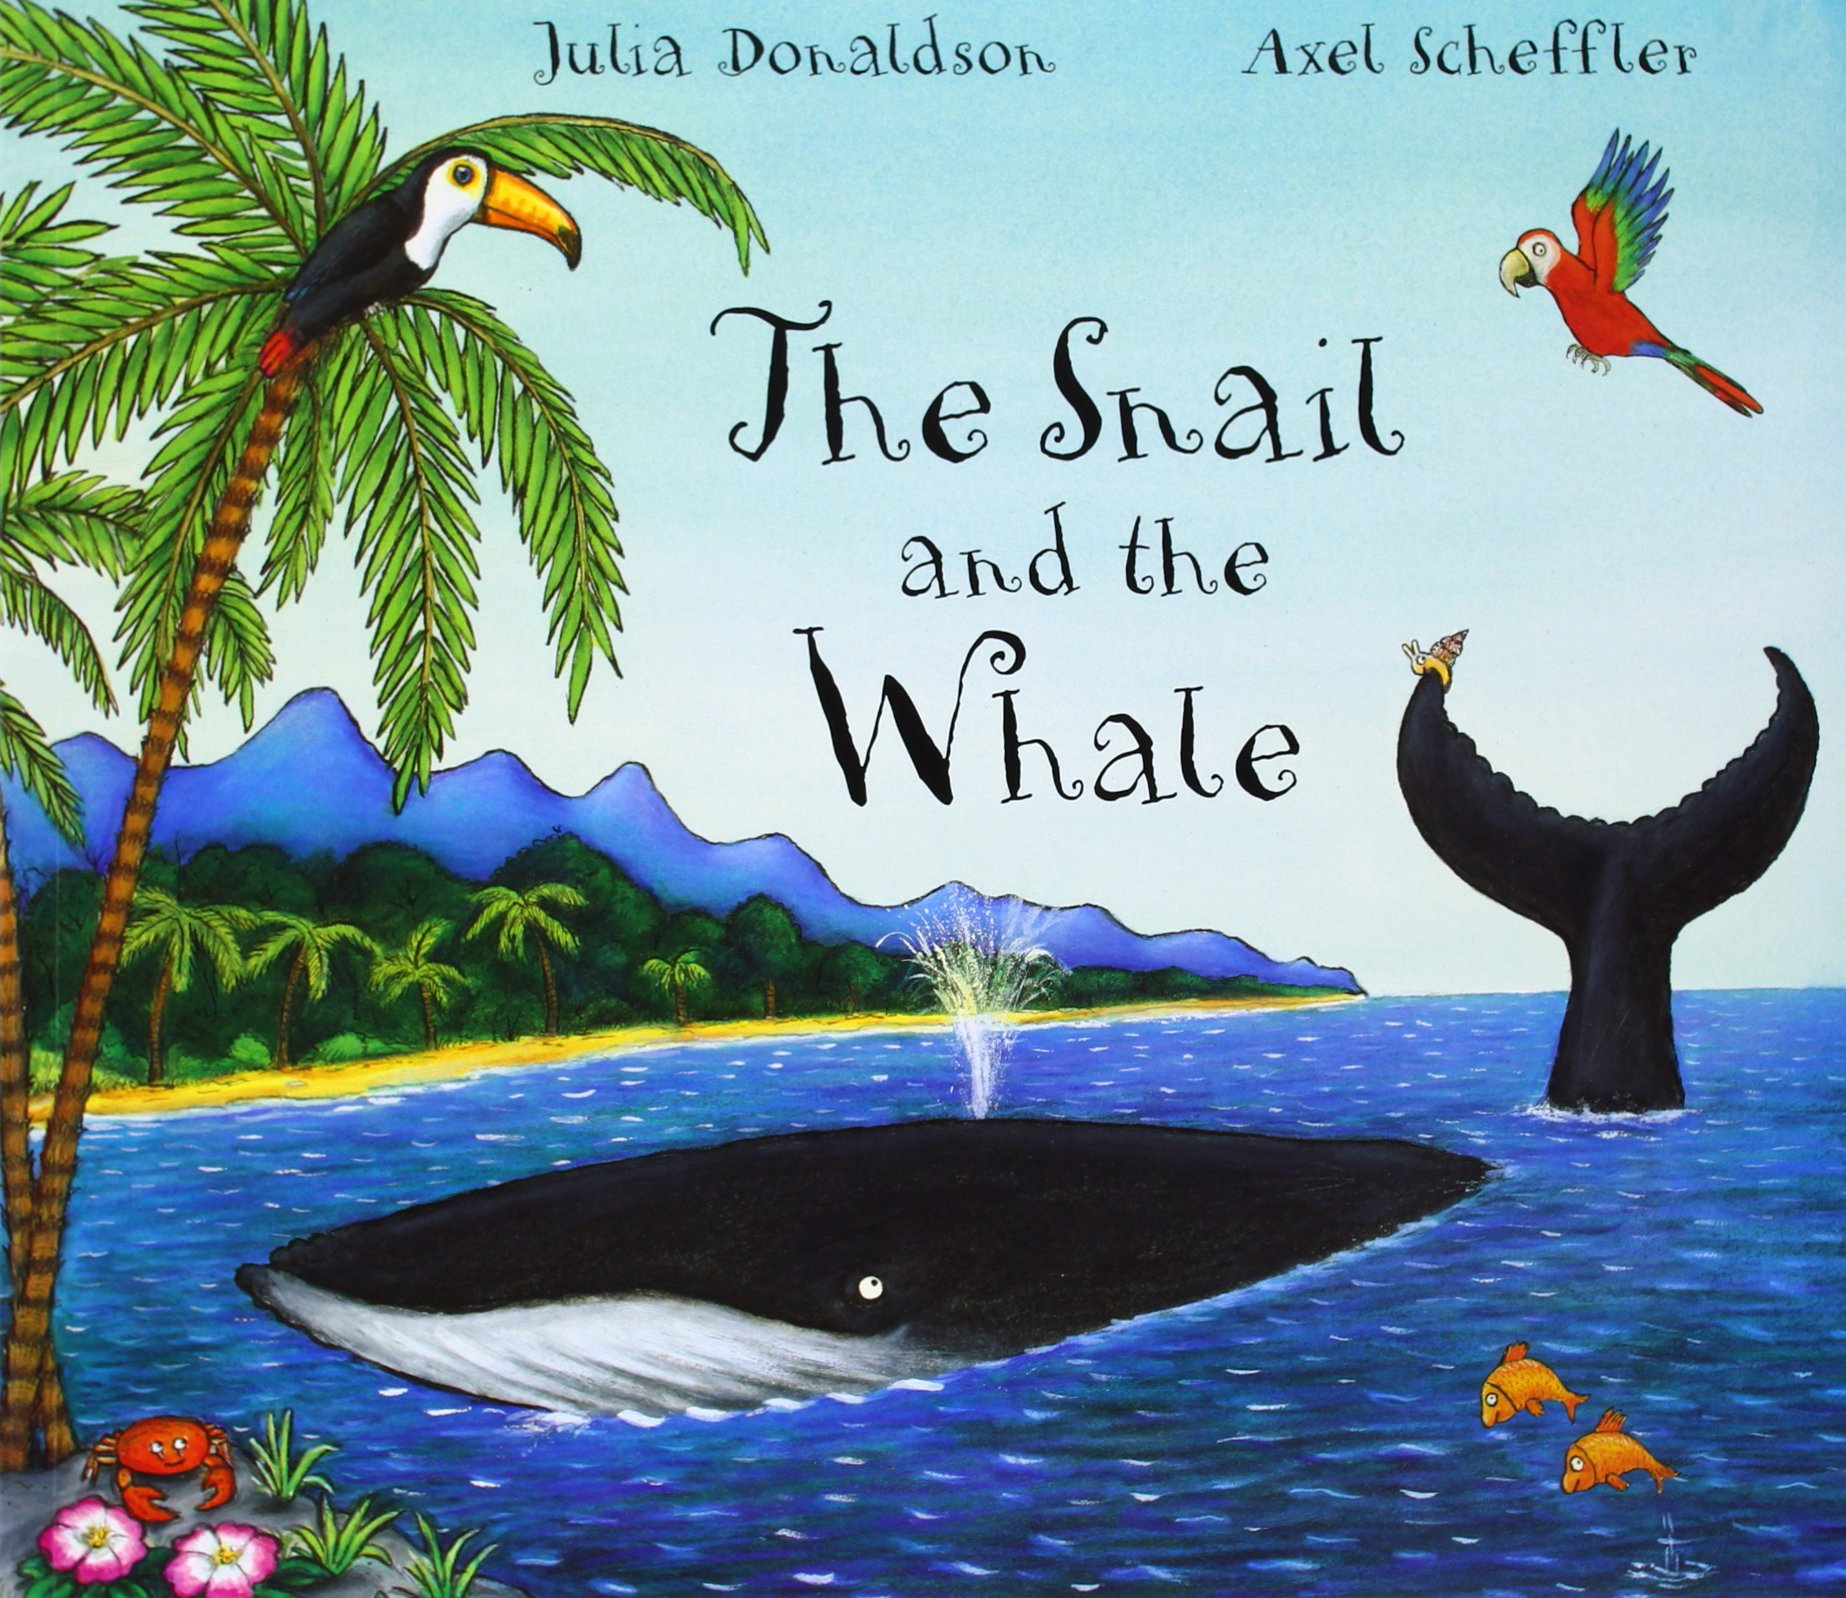 Image result for the whale and the snail